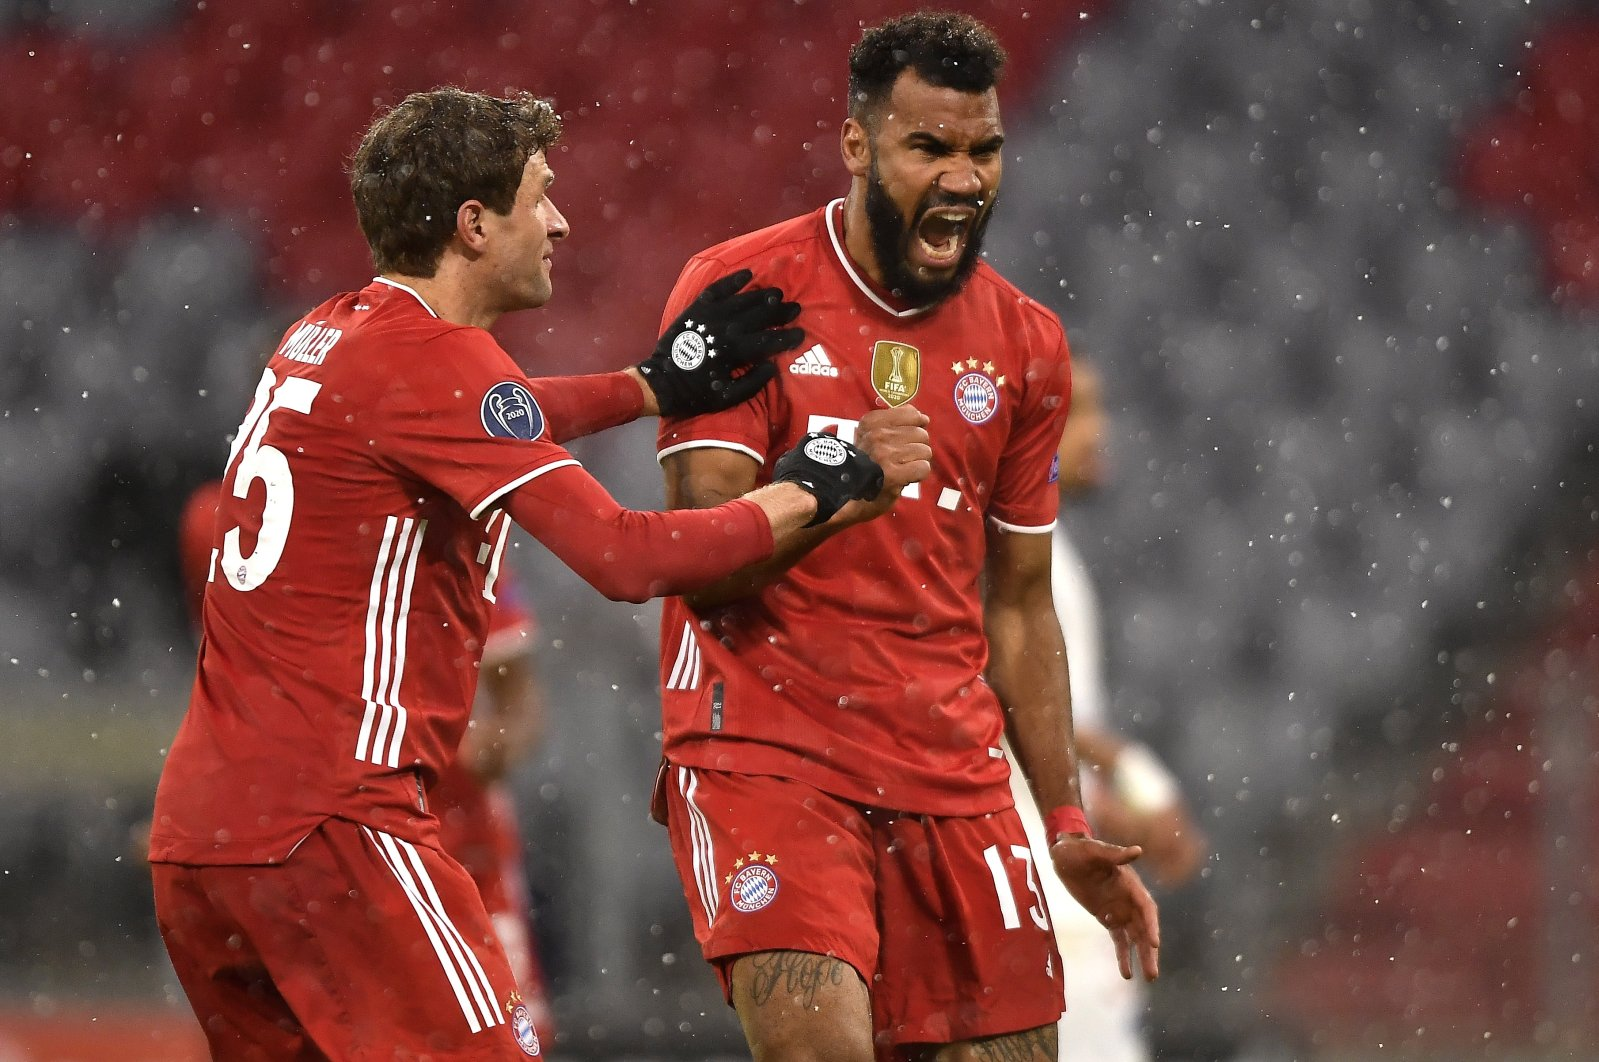 Bayern Munich's Eric Maxim Choupo-Moting (R) celebrates with teammate Thomas Mueller after scoring a goal against PSG in the UEFA Champions League quarterfinal first leg tie, Munich, Germany, April 7, 2021. (EPA Photo)